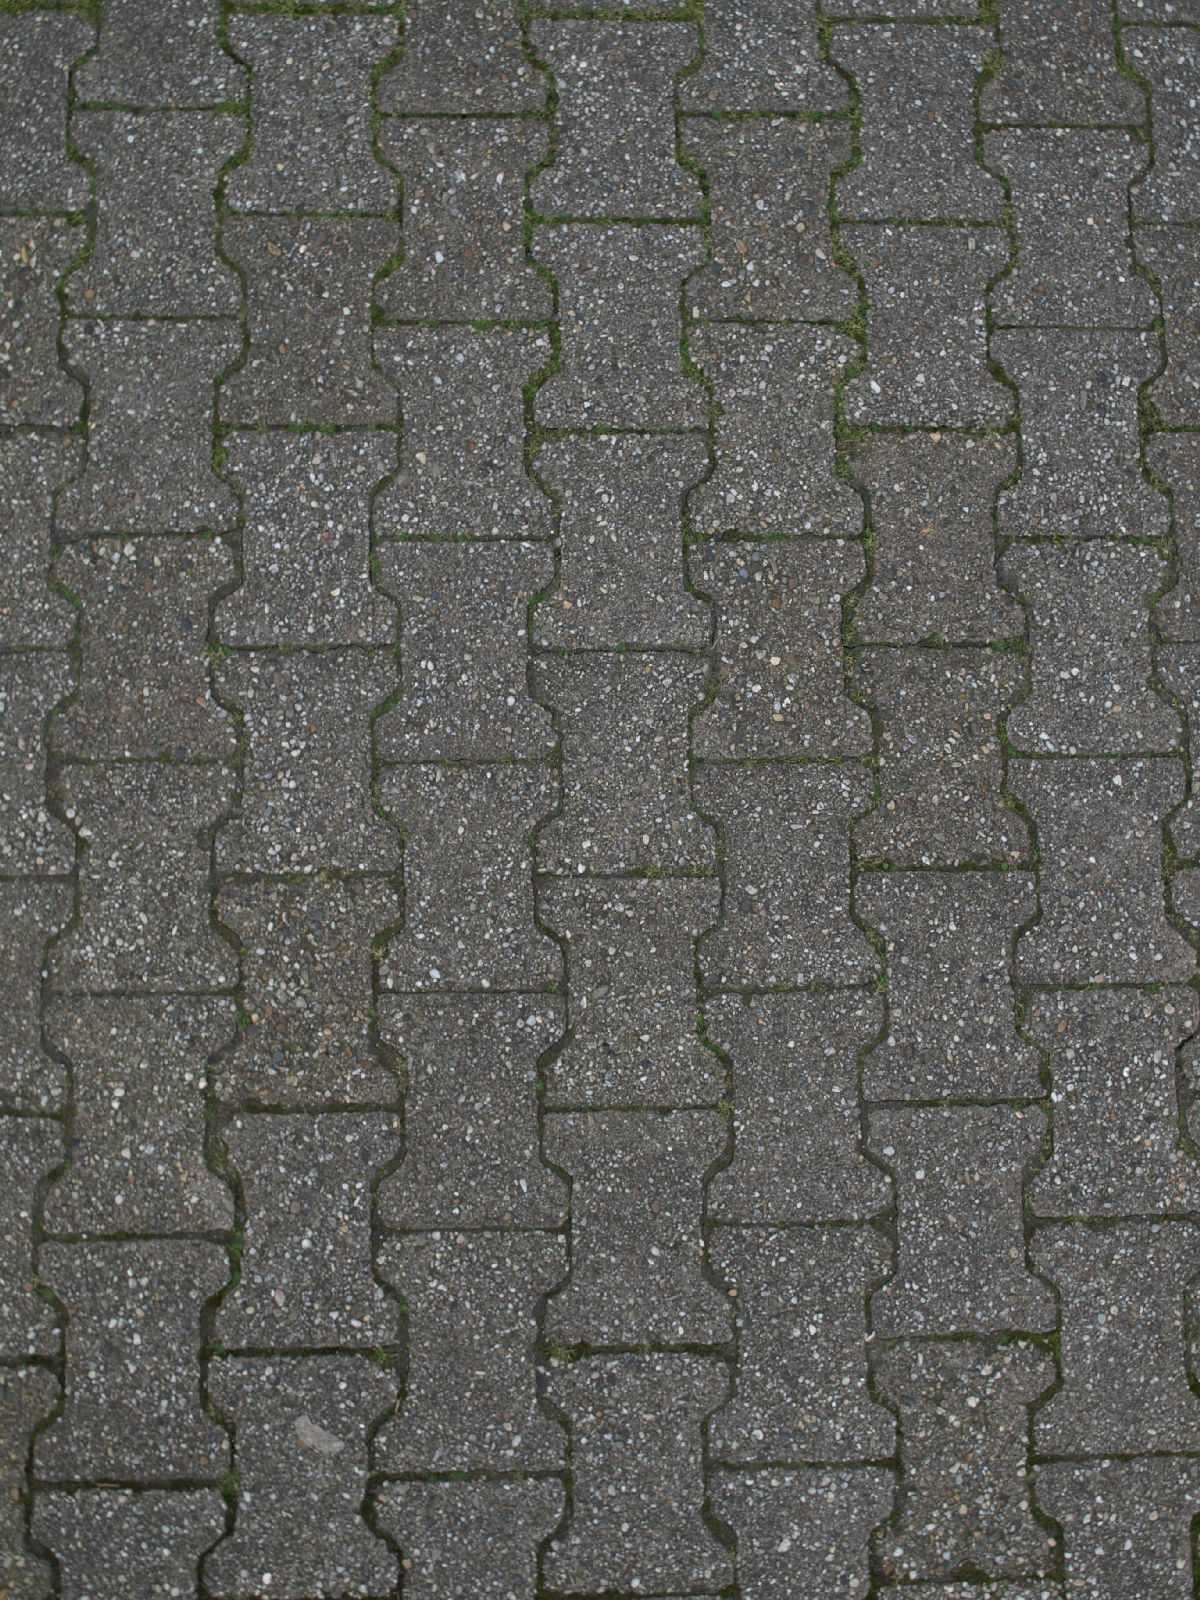 free ground urban pavement and street texture photo gallery